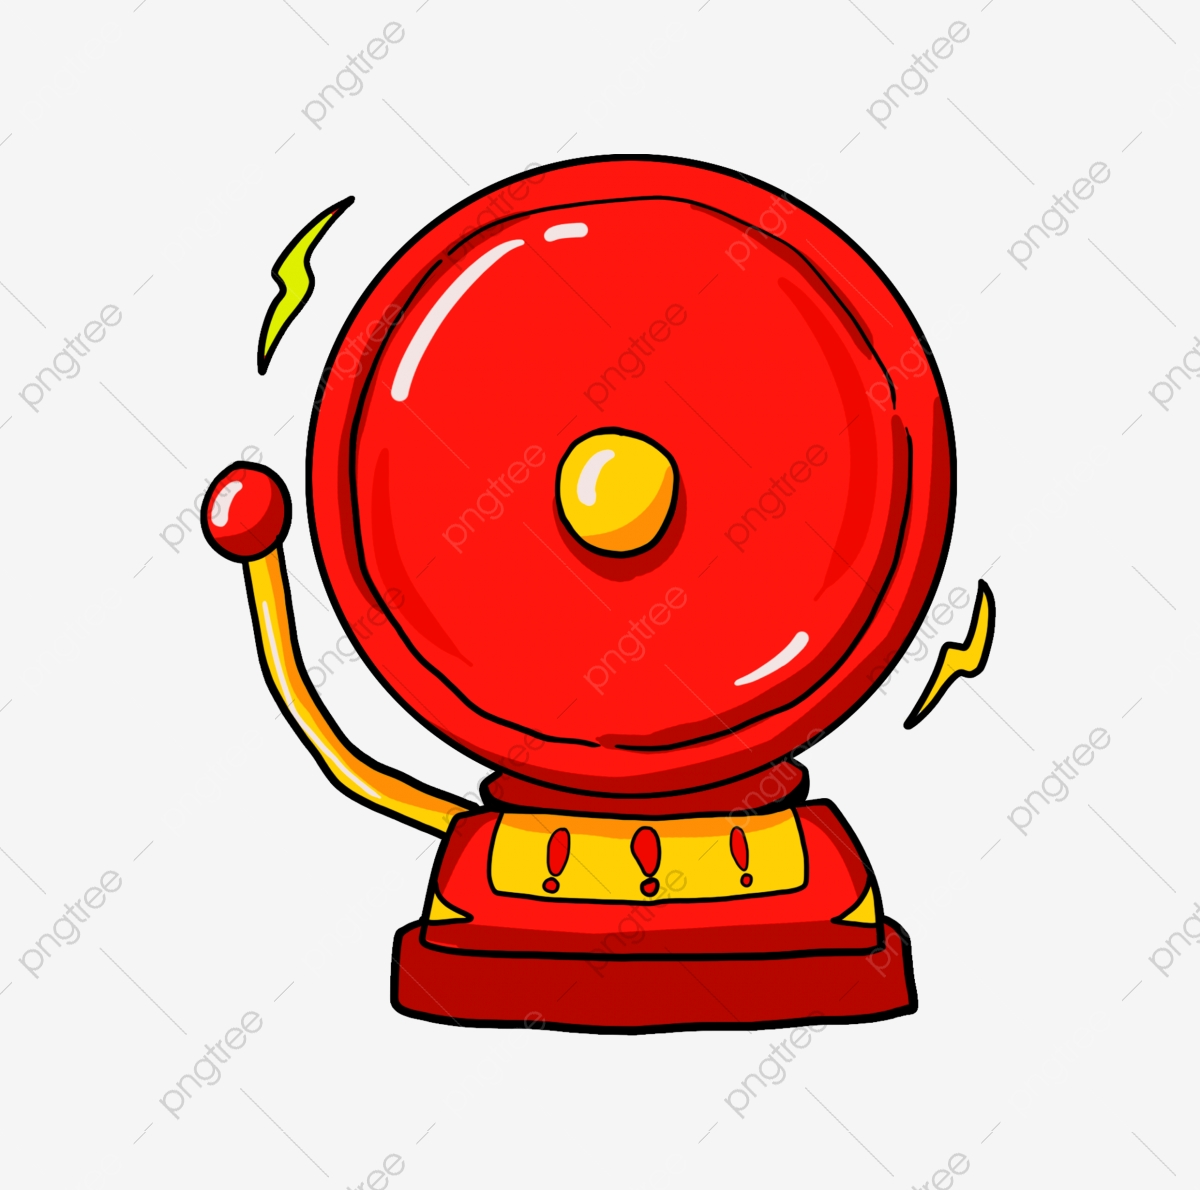 Yellow emergency rescue fire. Bell clipart alarm